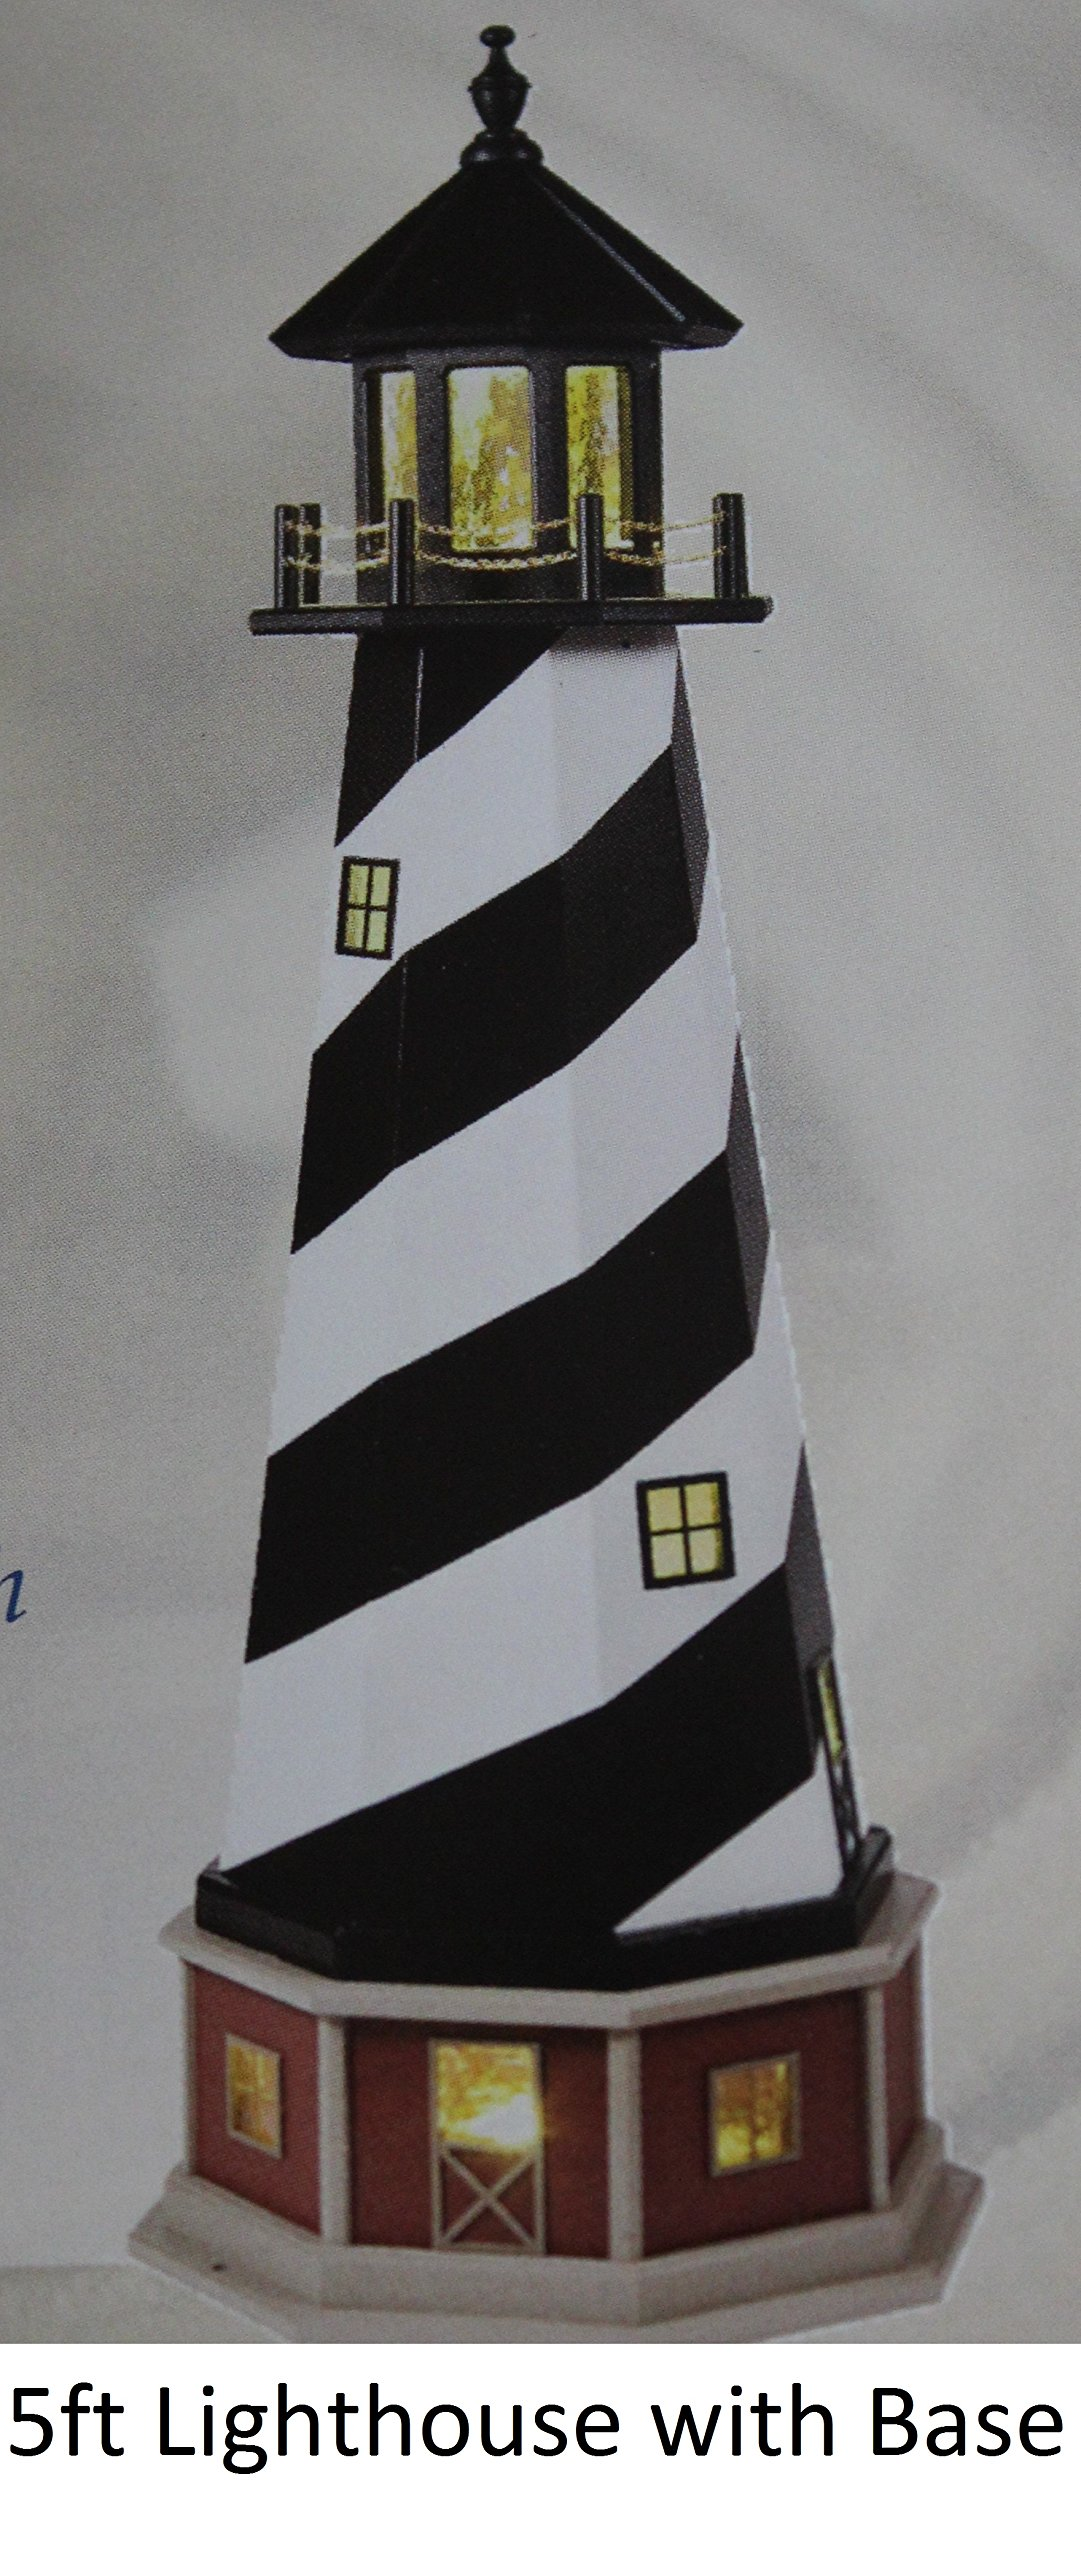 Amish-Made Hybrid (Wood and Poly) Lighthouse with Base - Cape Hatteras, NC Replica, 6' Tall by Beaver Dam Woodworks